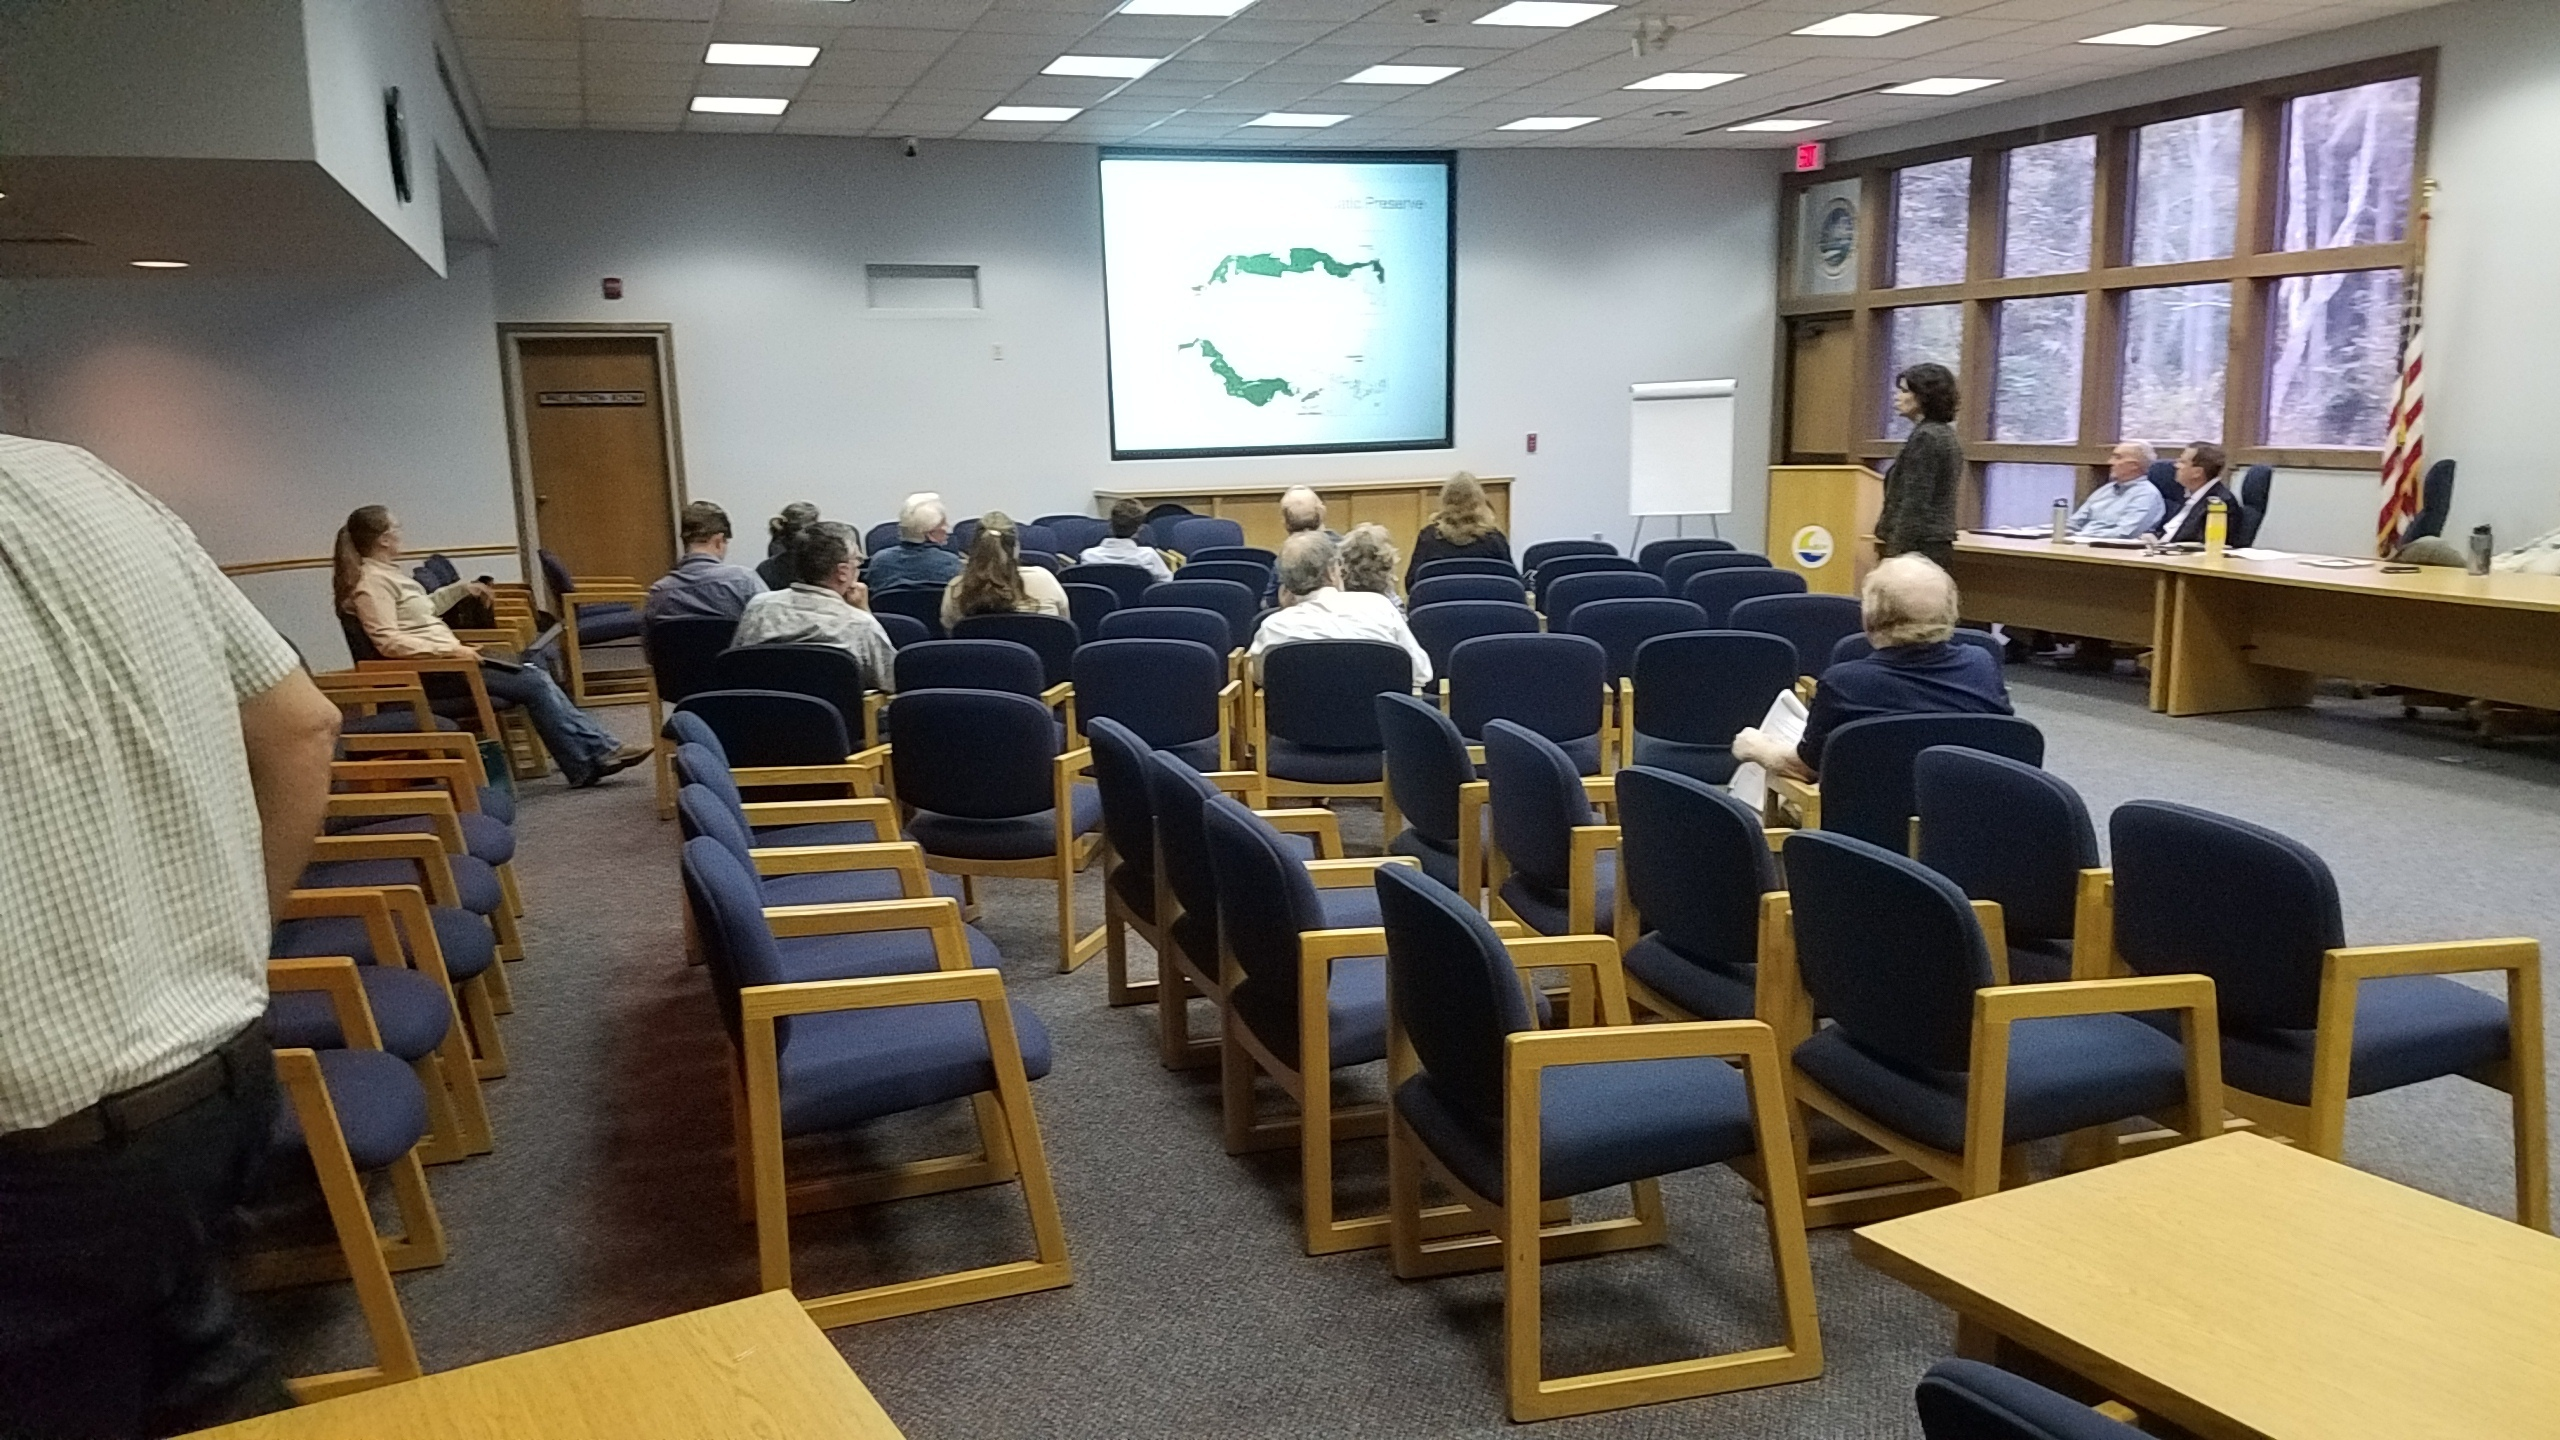 2560x1440 Audience with back of Hugh Thomas, Coastal Rivers Basin Presentation, in SWIM Plan Meeting, Live Oak, by John S. Quarterman, for WWALS.net, 3 October 2017